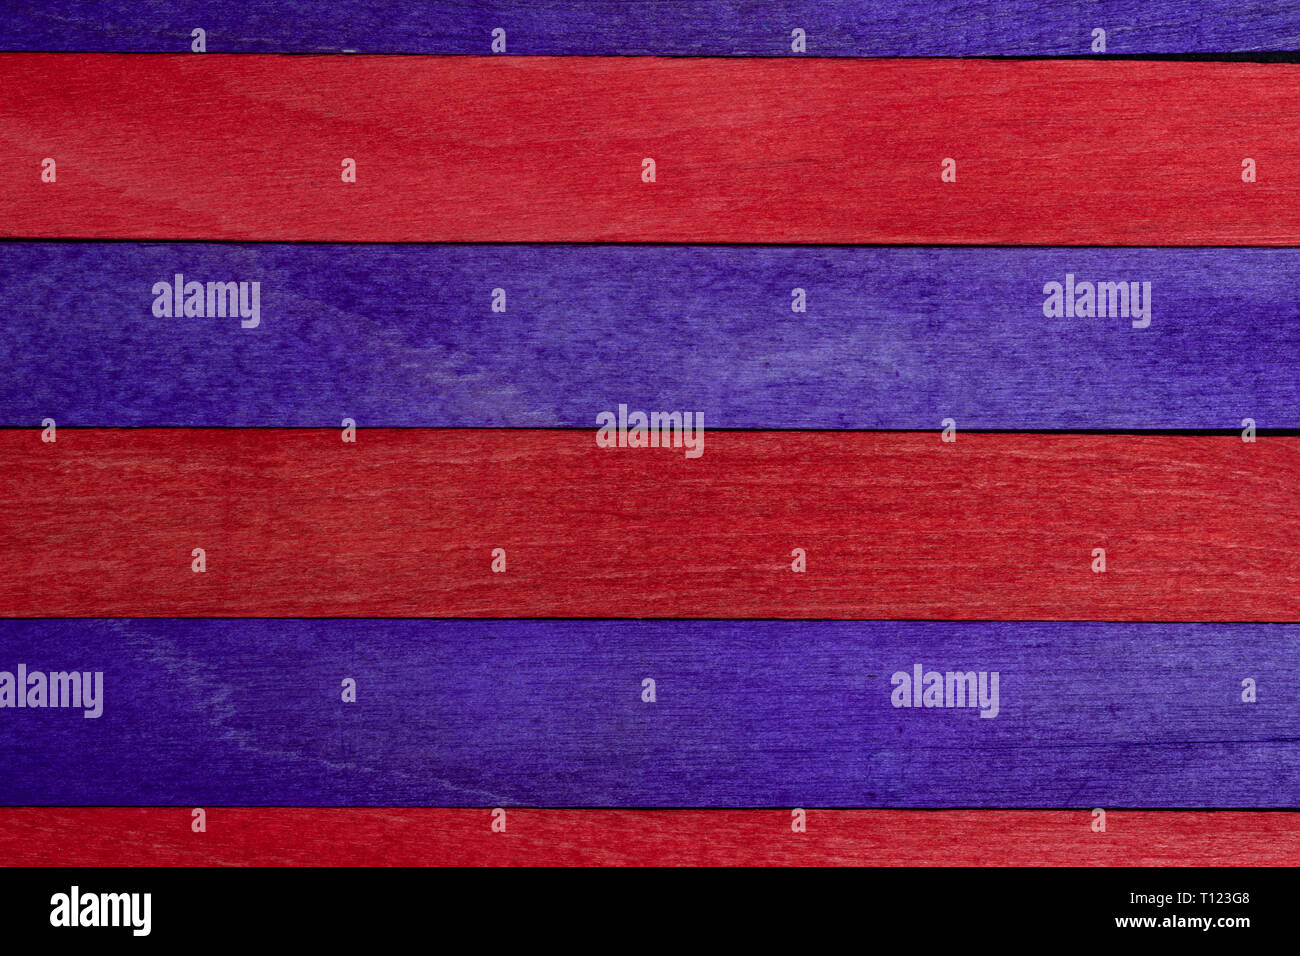 Beautiful Texture Of Natural Wood Slats In Purple And Red Colors Natural And Aged Appearance Soccer Team Barcelona Barca Cule Stock Photo Alamy